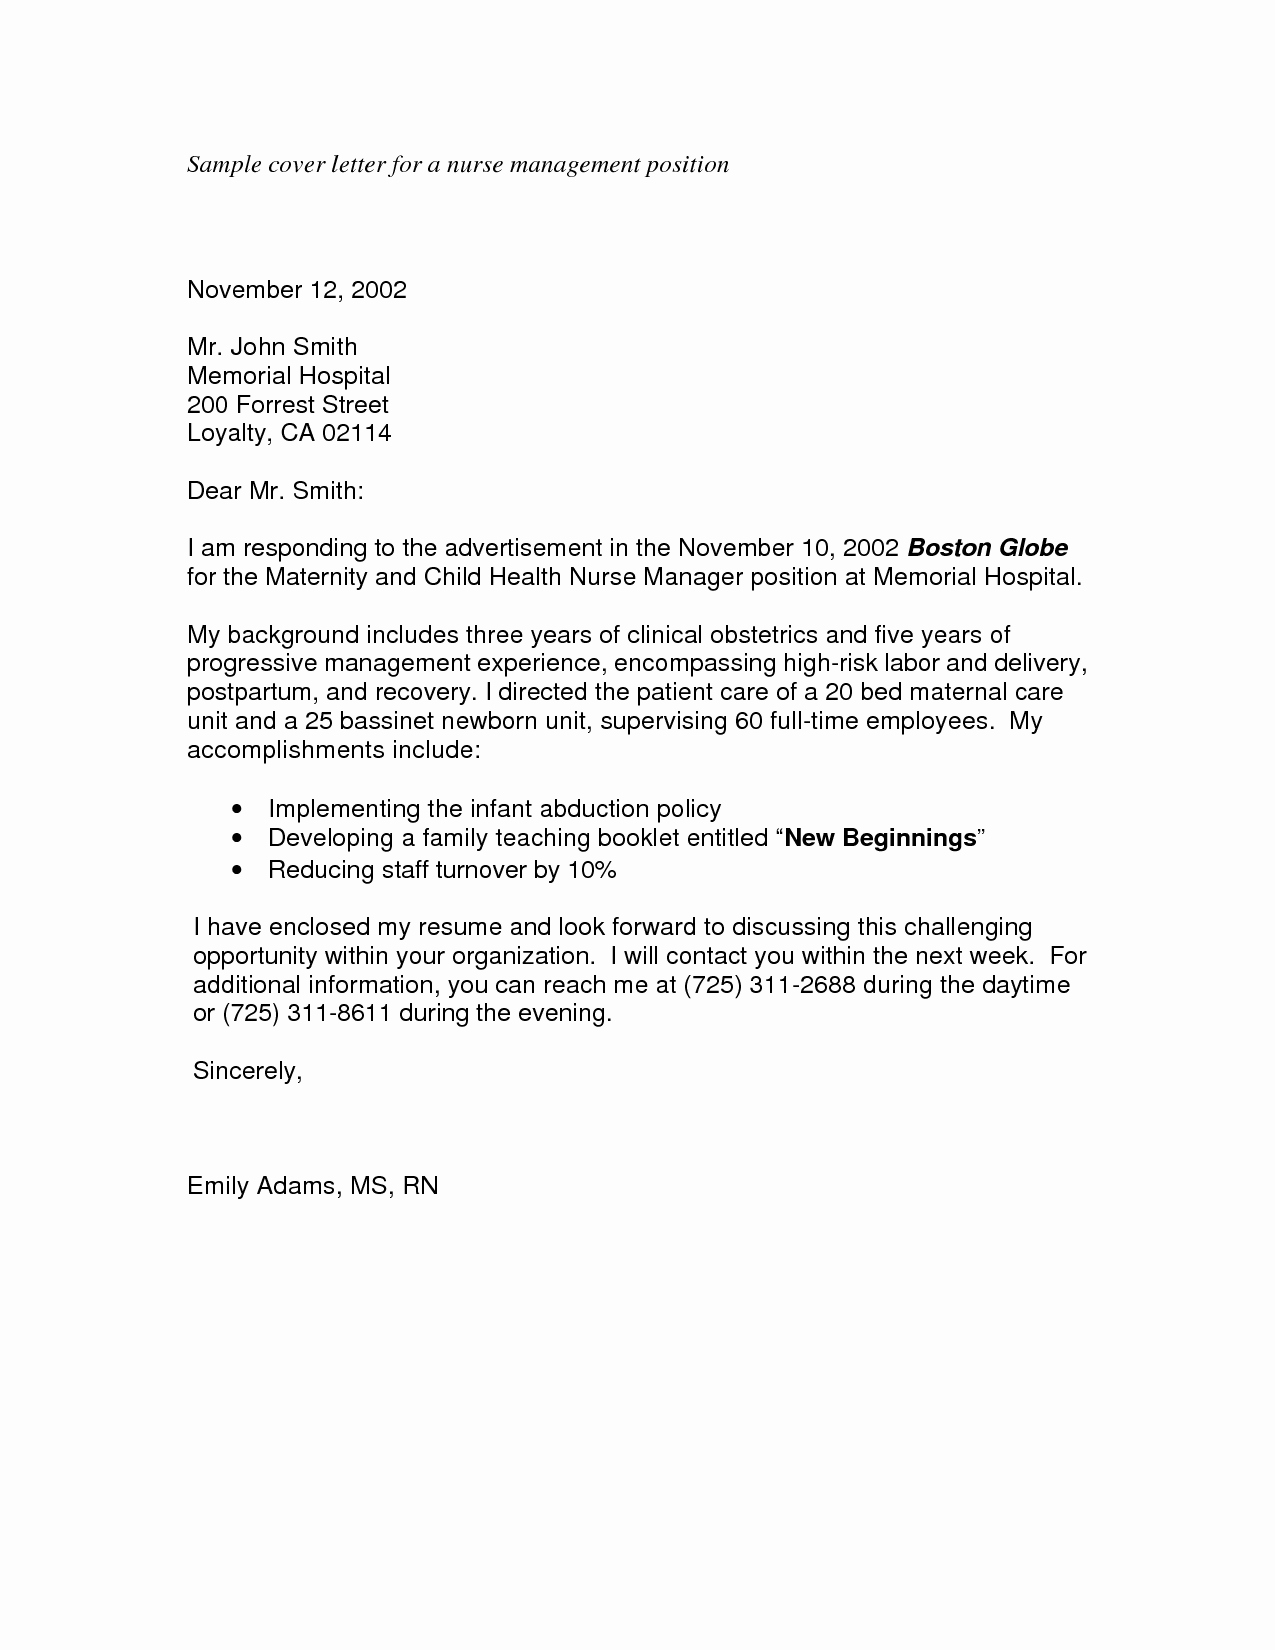 Applying for Job Letter Luxury Sample Cover Letter for Applying A Job